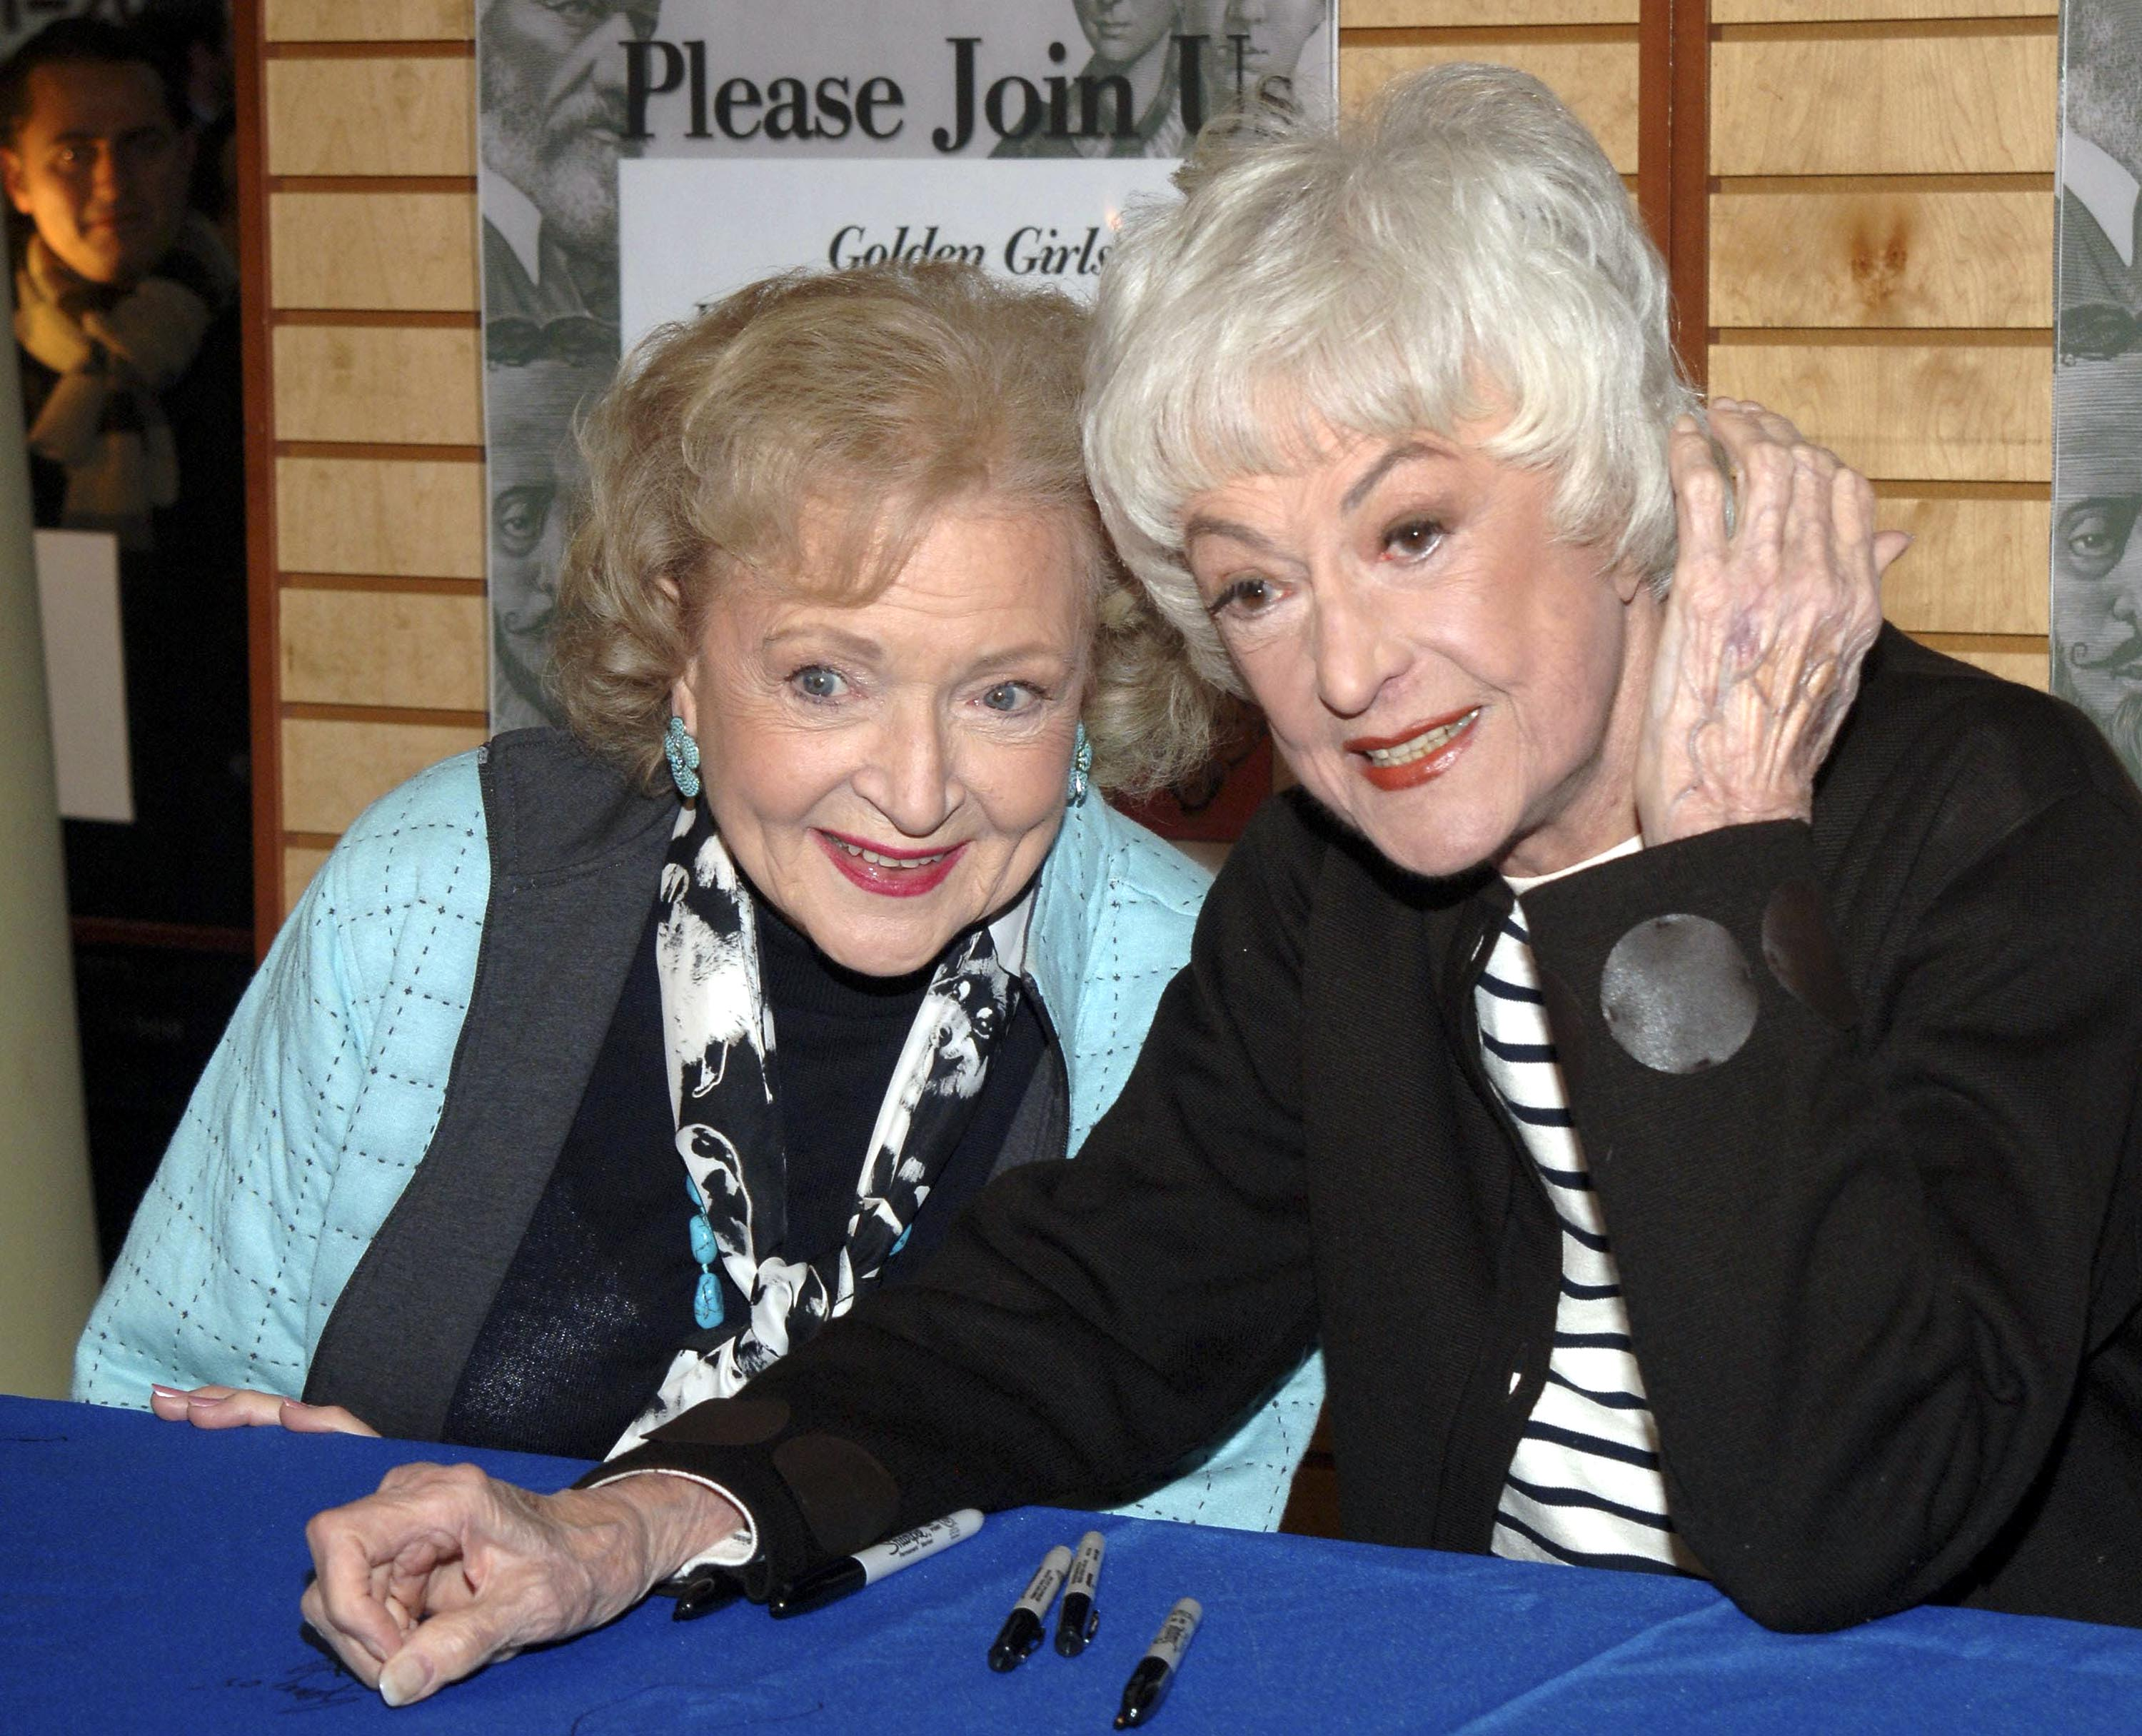 """Betty White and Bea Arthur sign copies of """"The Golden Girls Season 3"""" in New York City on November 22, 2005 